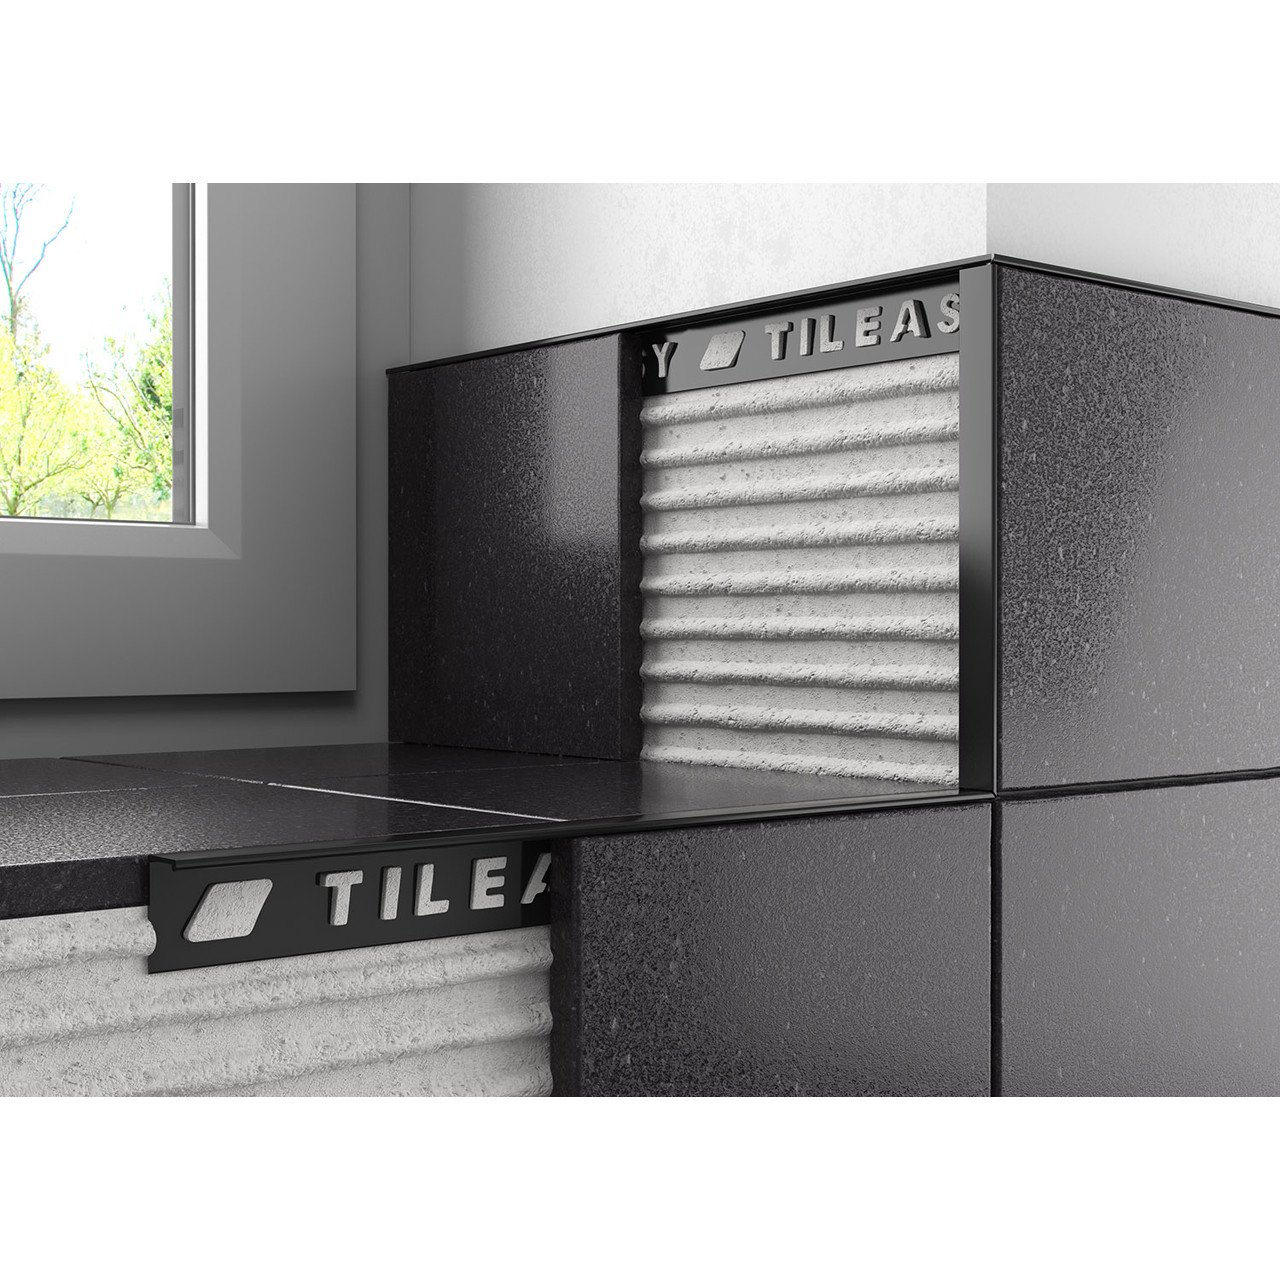 Tileasy 10mm Black Square Edge Metal Tile Trim Bat10 within proportions 1280 X 1280